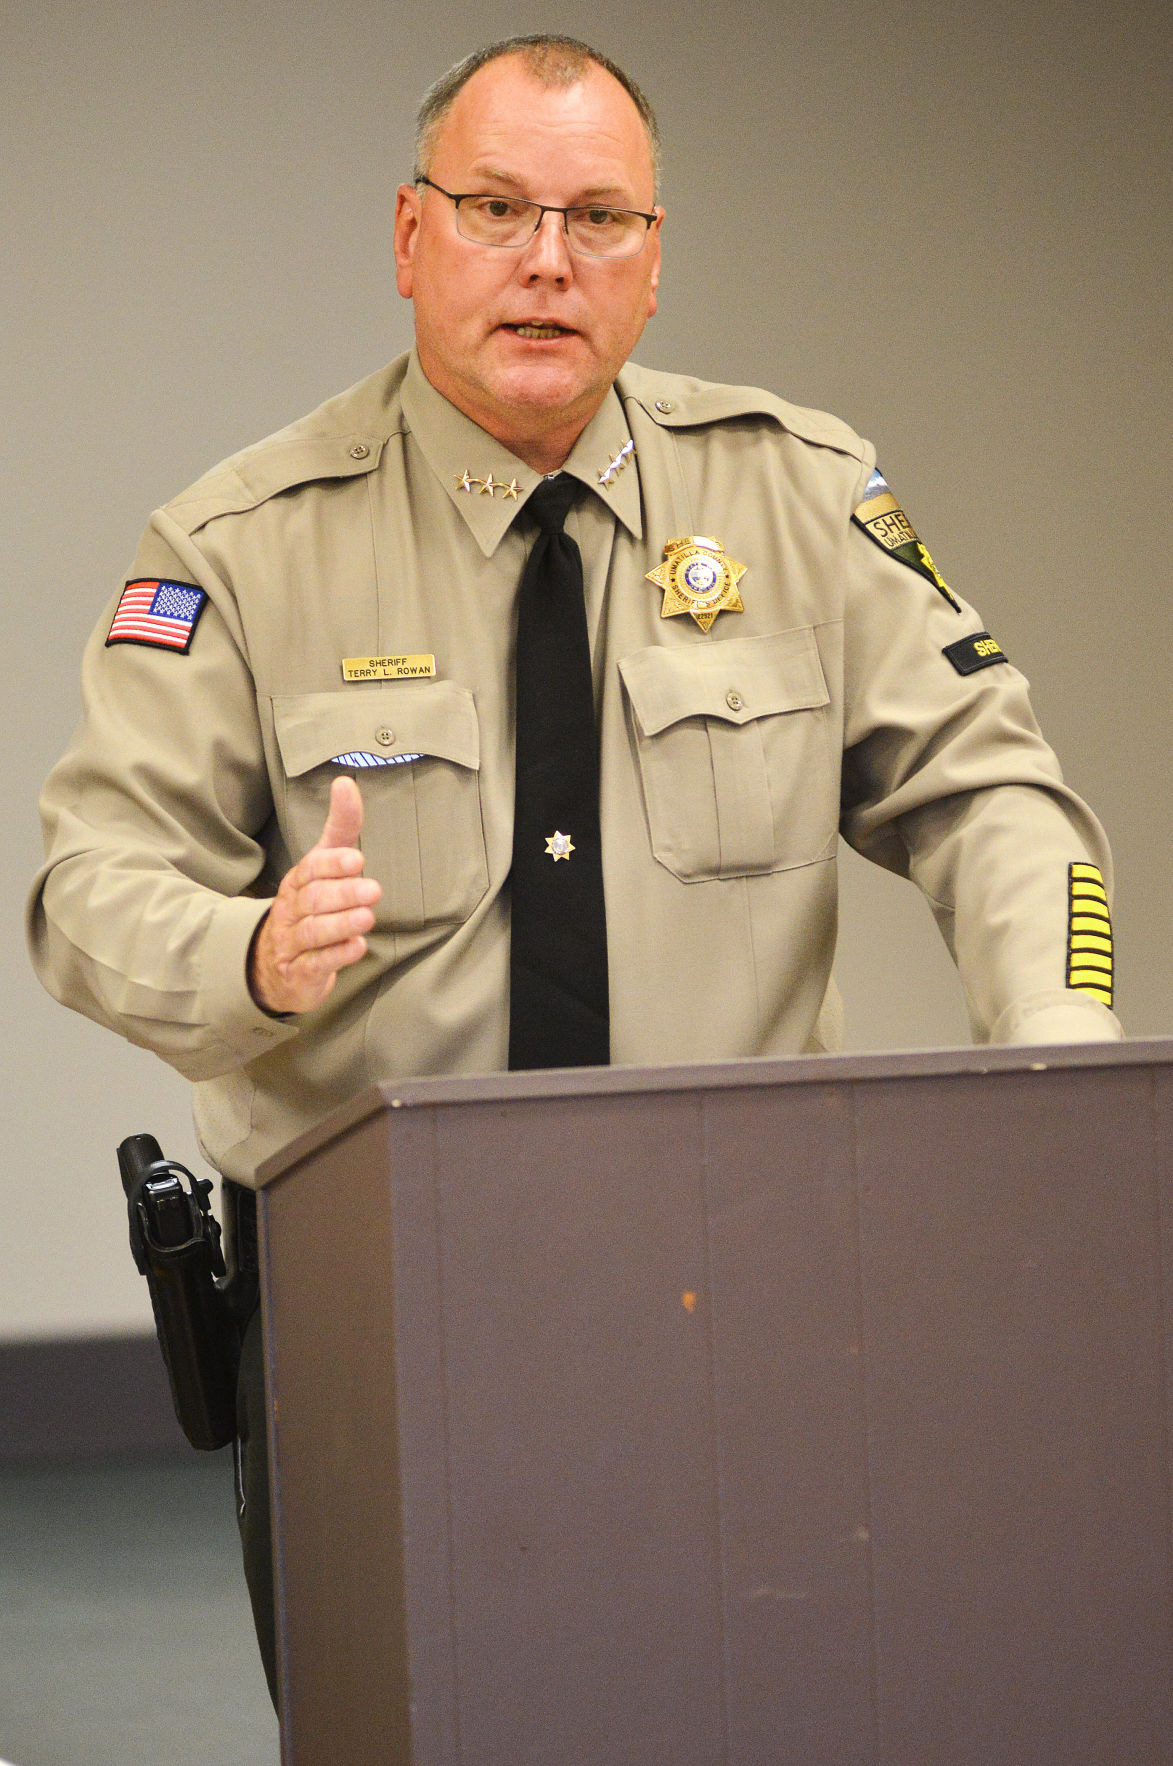 Local sheriffs join support to end Oregon's sanctuary law